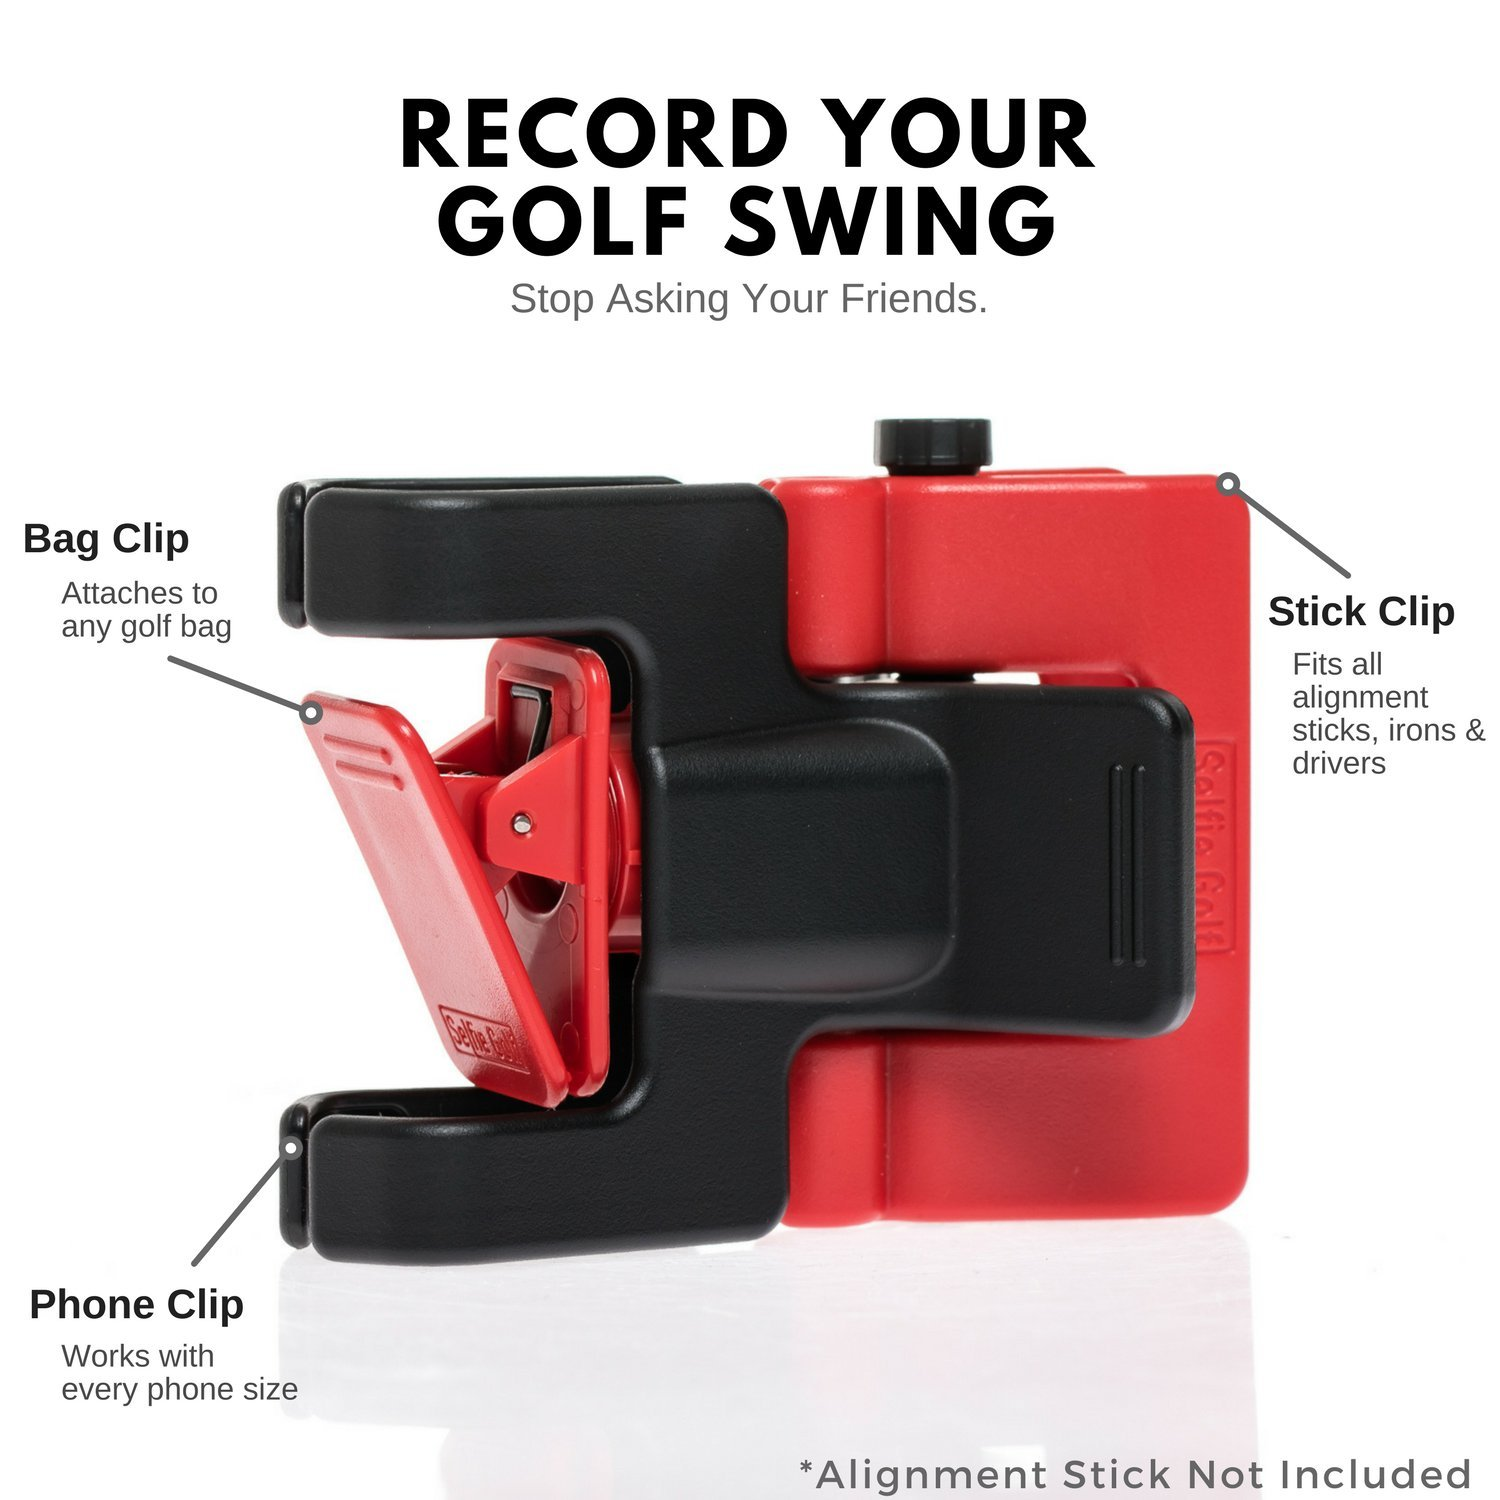 Record Golf Swing - Cell Phone Clip Holder and Training Aid by SelfieGOLF TM - Golf Accessories | The Winner of The PGA Best of 2017 | Compatible with Any Smart Phone (Red/Black) by Selfie Golf (Image #3)